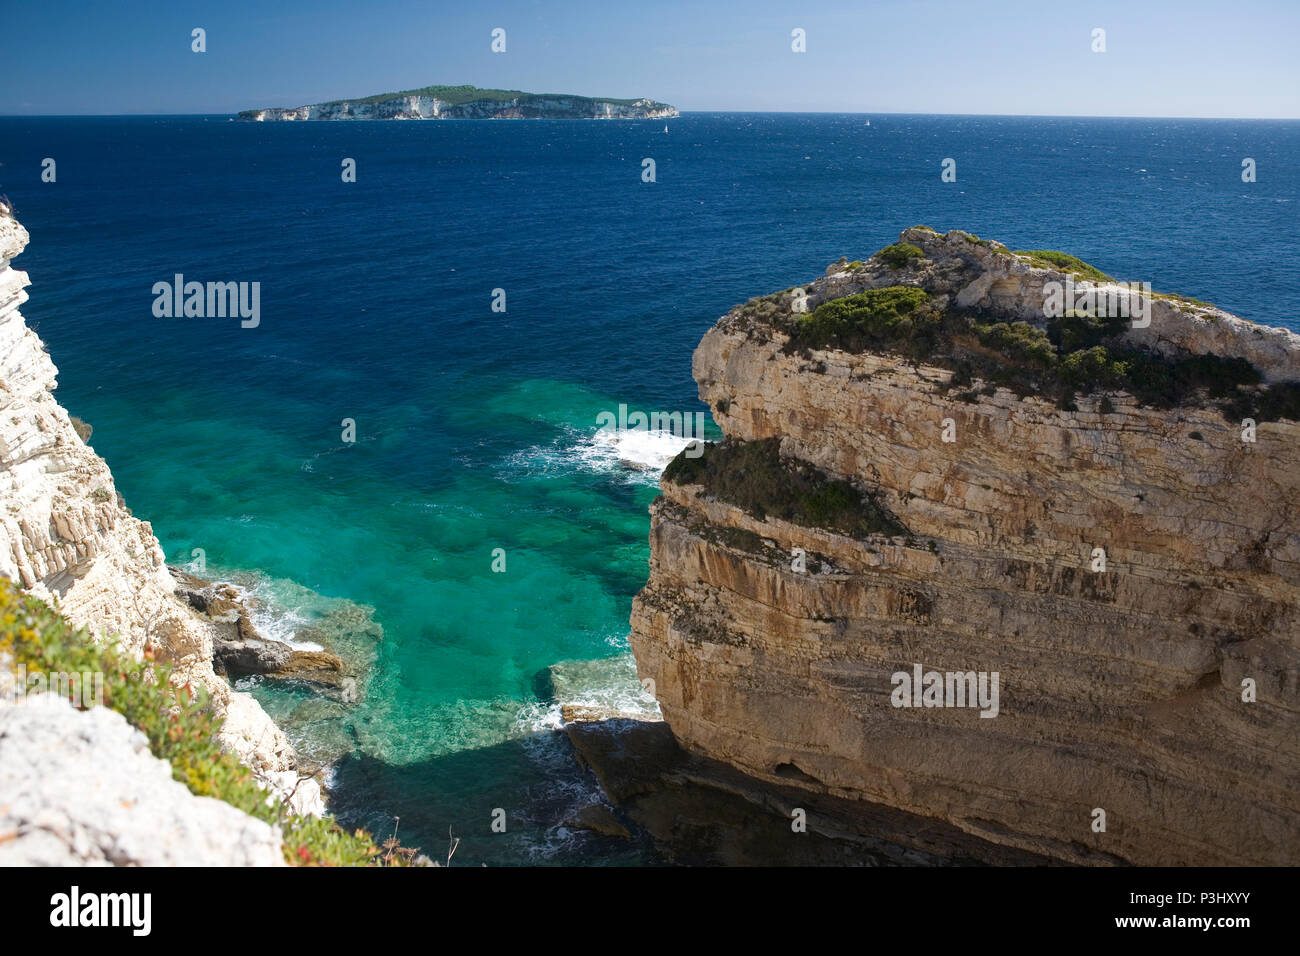 Looking south from the southern end of Paxos by Tripitos Arch to the island of Antipaxos, Greece - Stock Image